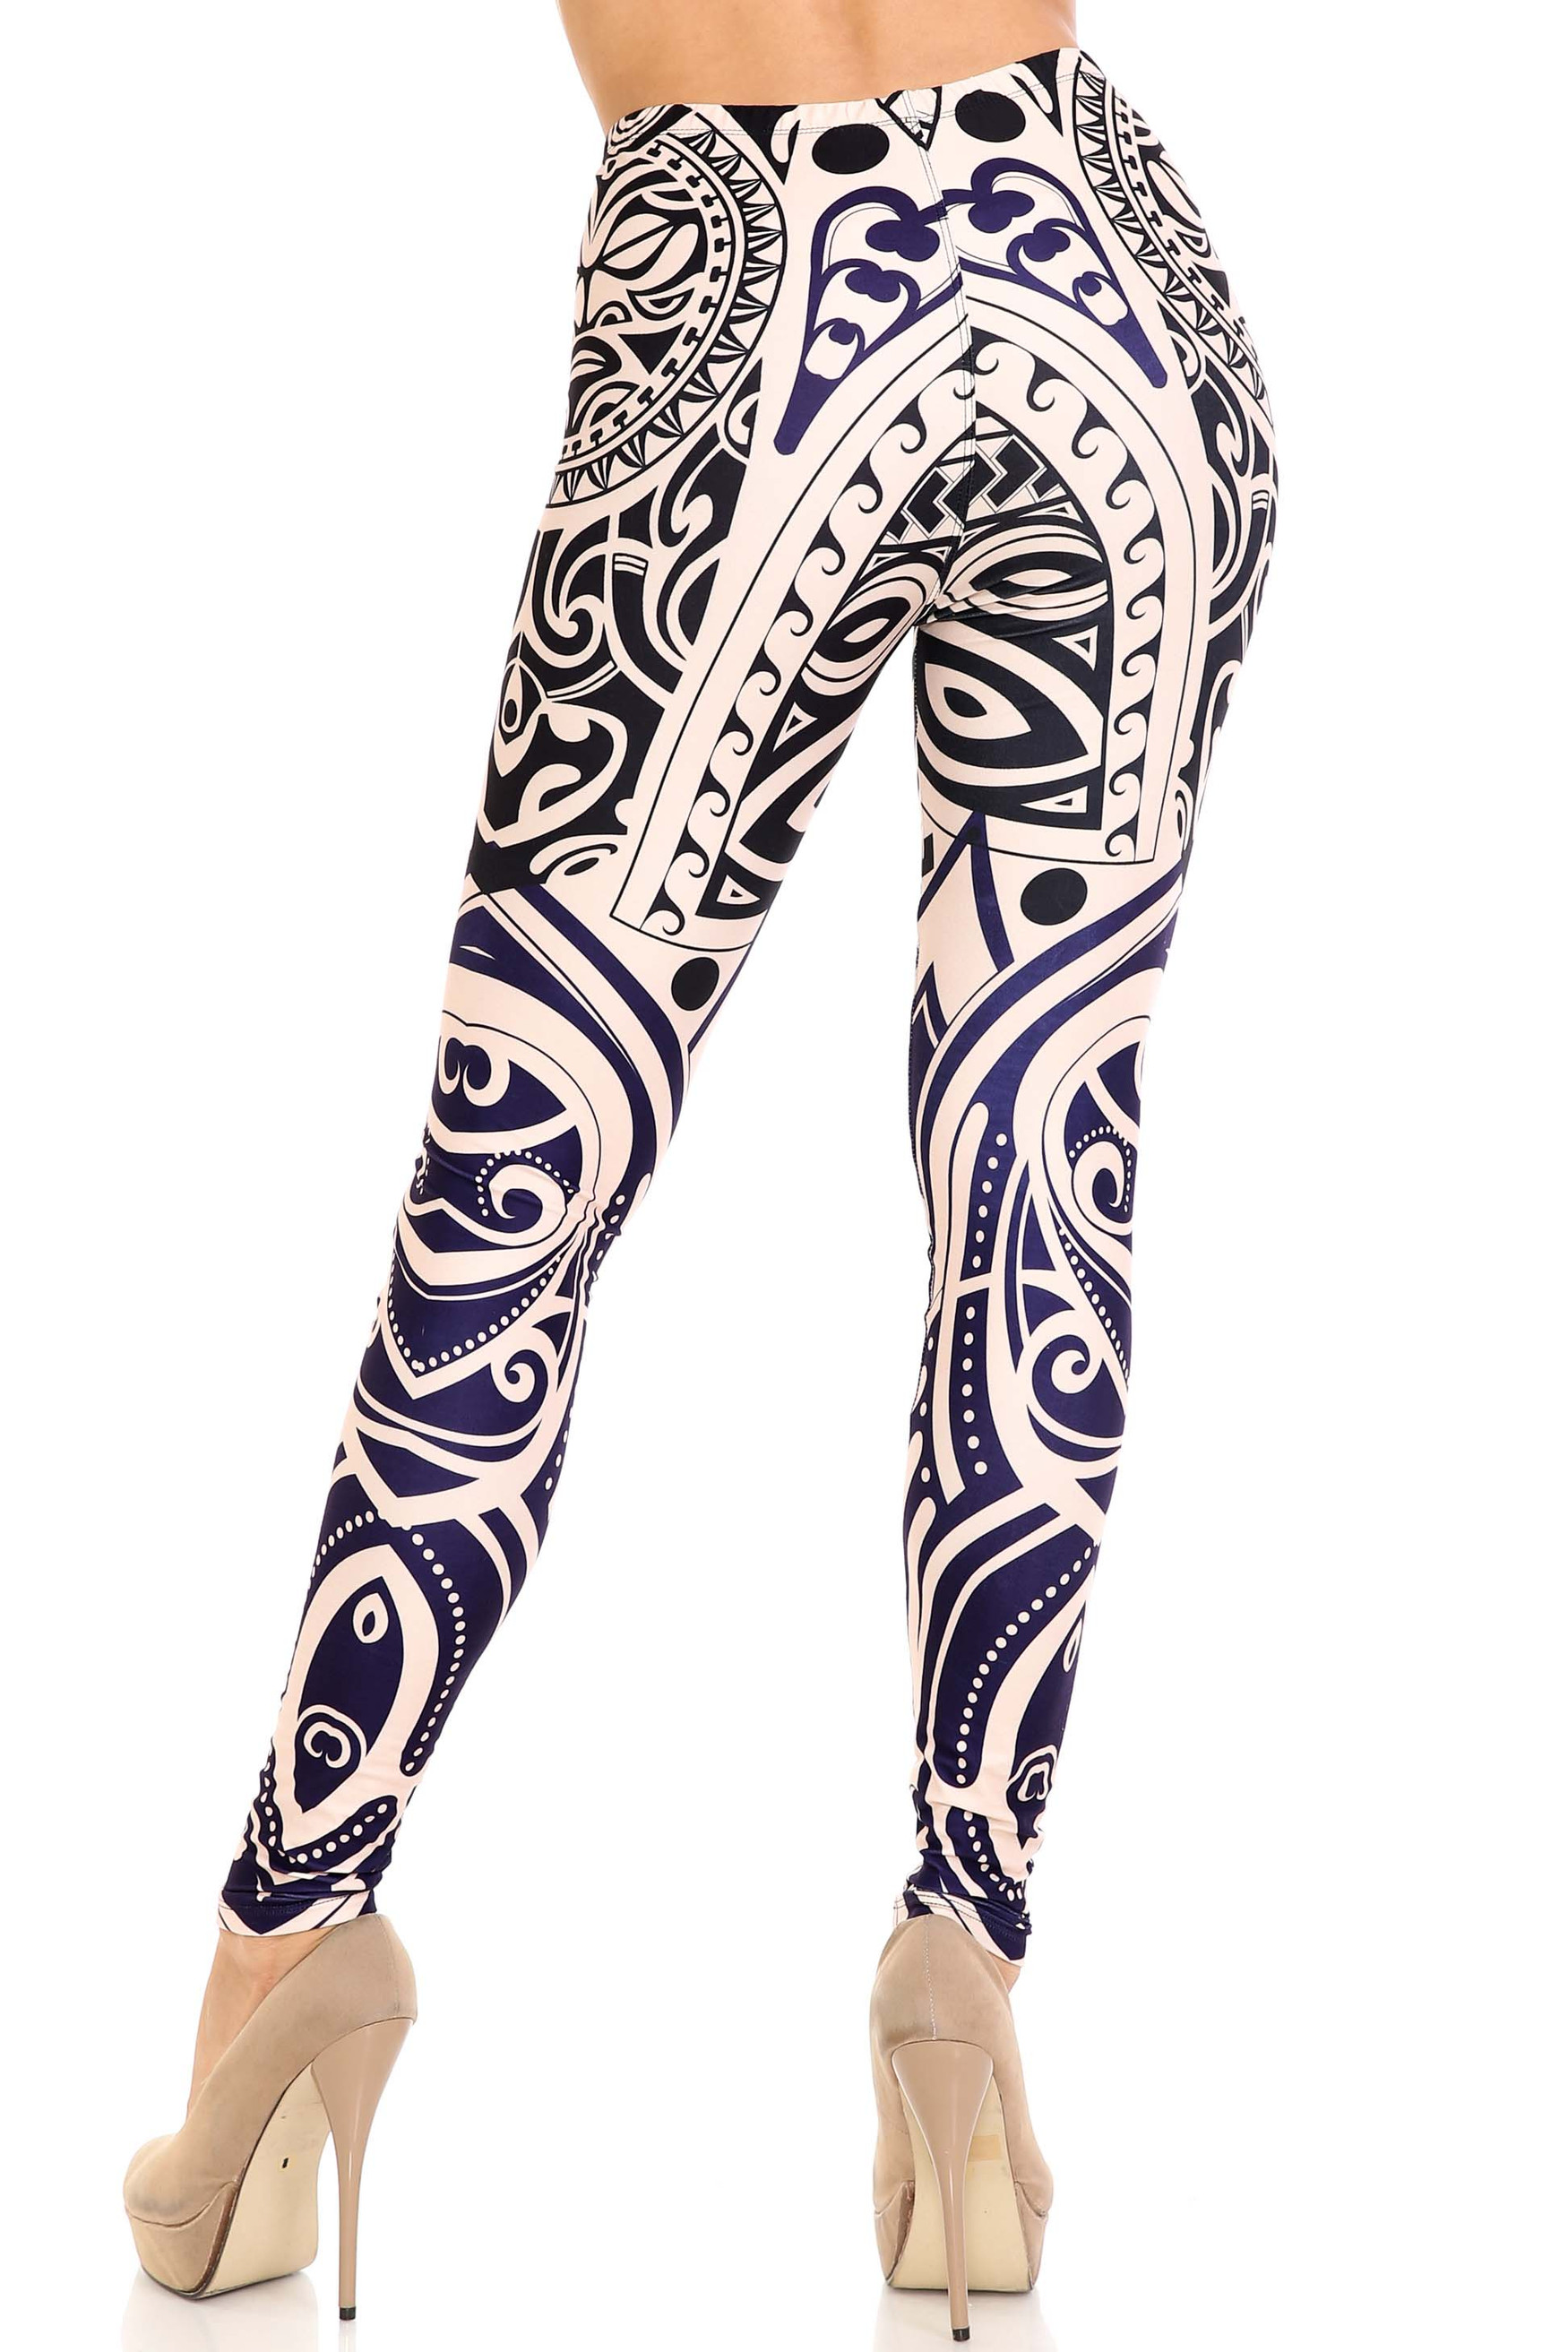 Rear view ofCreamy Soft Valhalla Extra Plus Size Leggings - 3X-5X - USA Fashion™ showing off the super flattering design oriented in an almost contouring way.